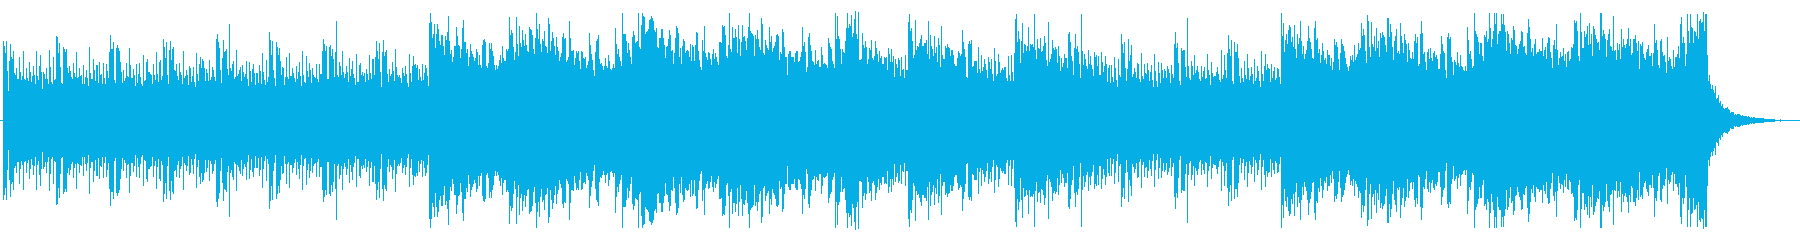 Serious Thinking time BGM's reproduced waveform